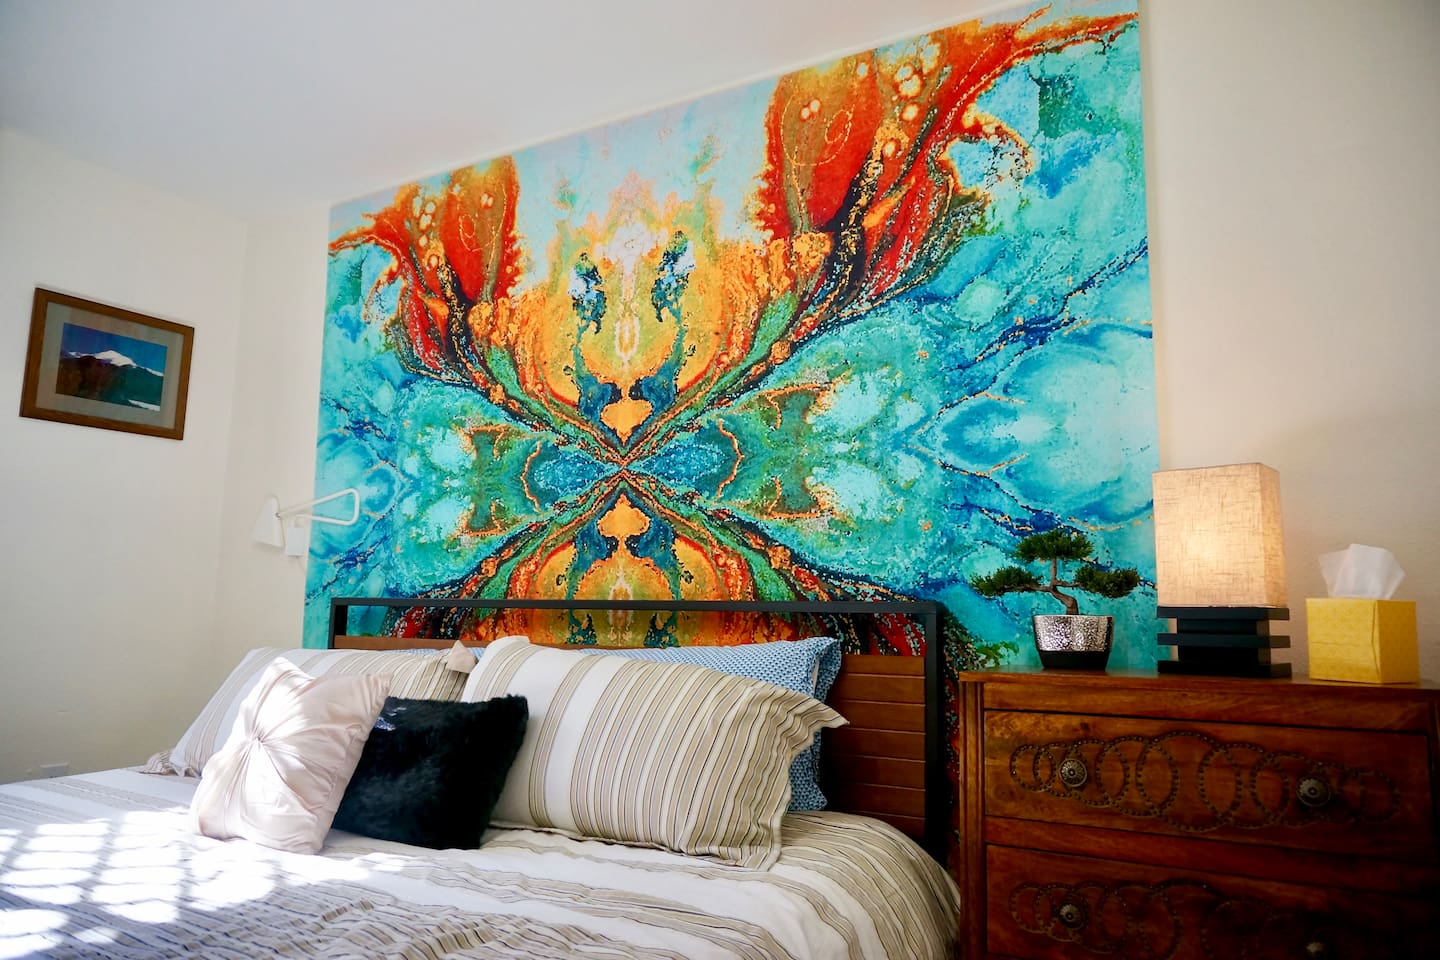 King size bed in a spacious room. Vibrant mural to start and end your day.